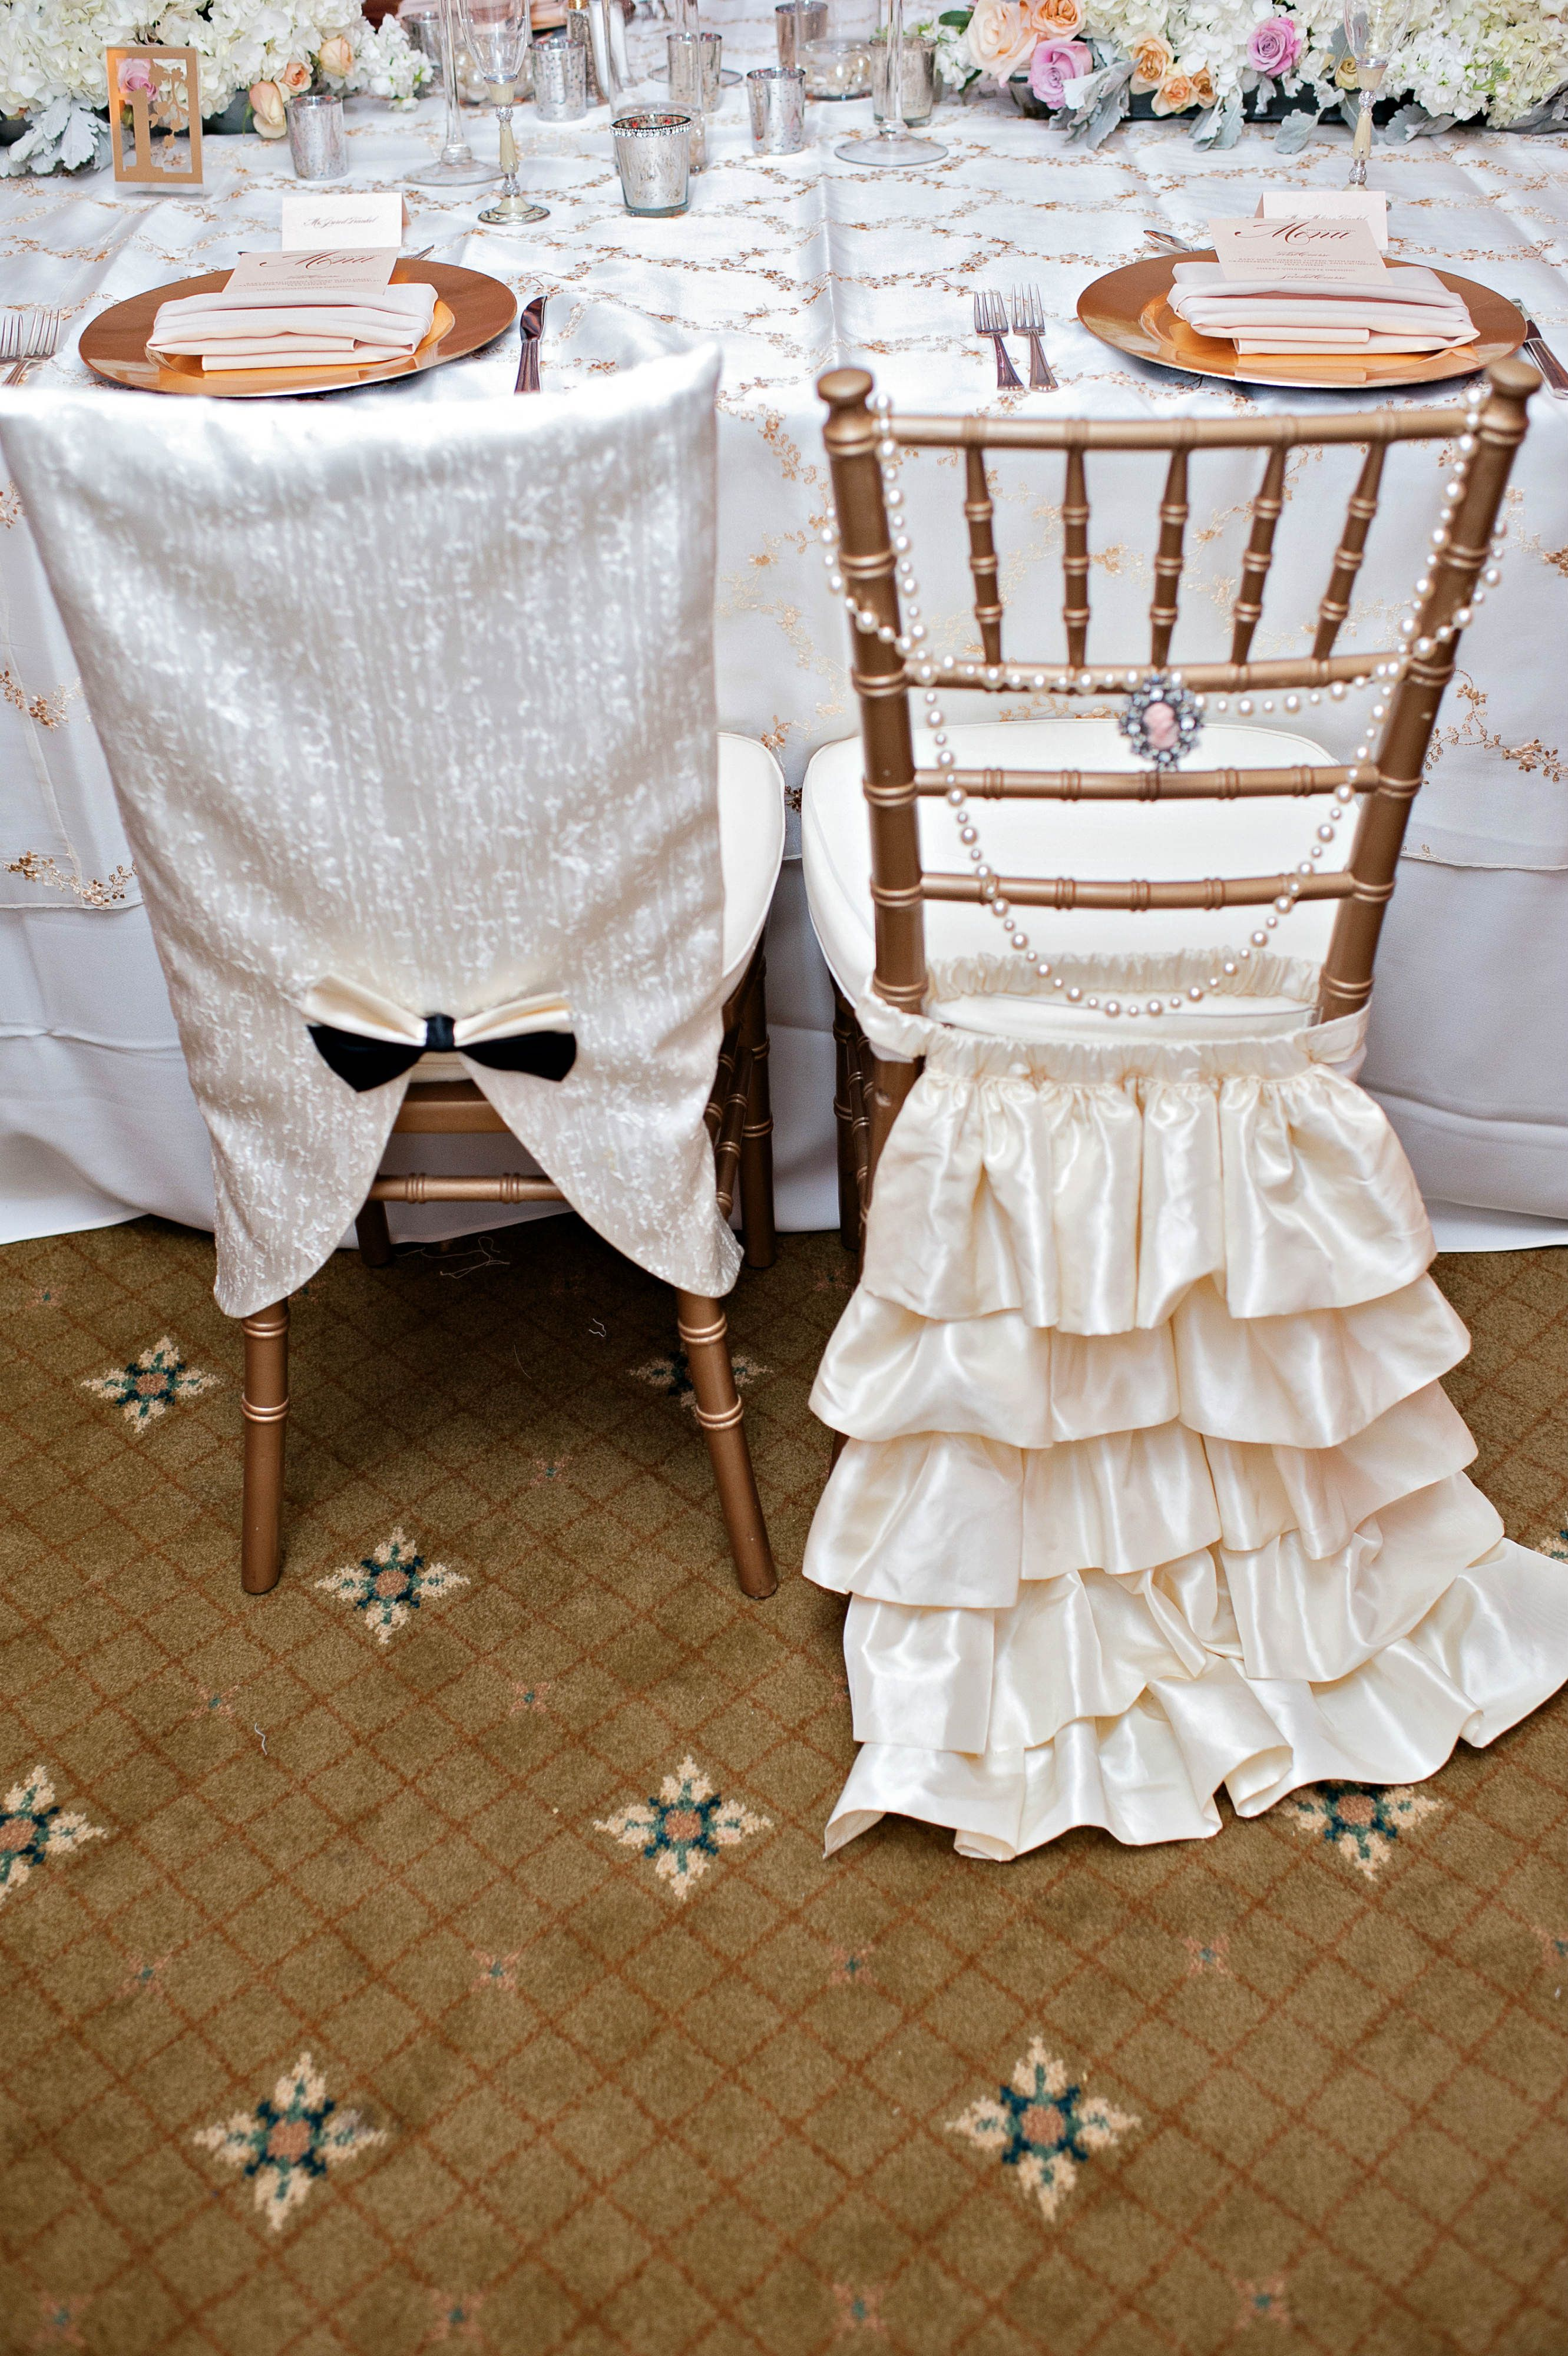 Chivari chair covers super cute bride and groom idea chivari chivari chair covers super cute bride and groom idea junglespirit Image collections